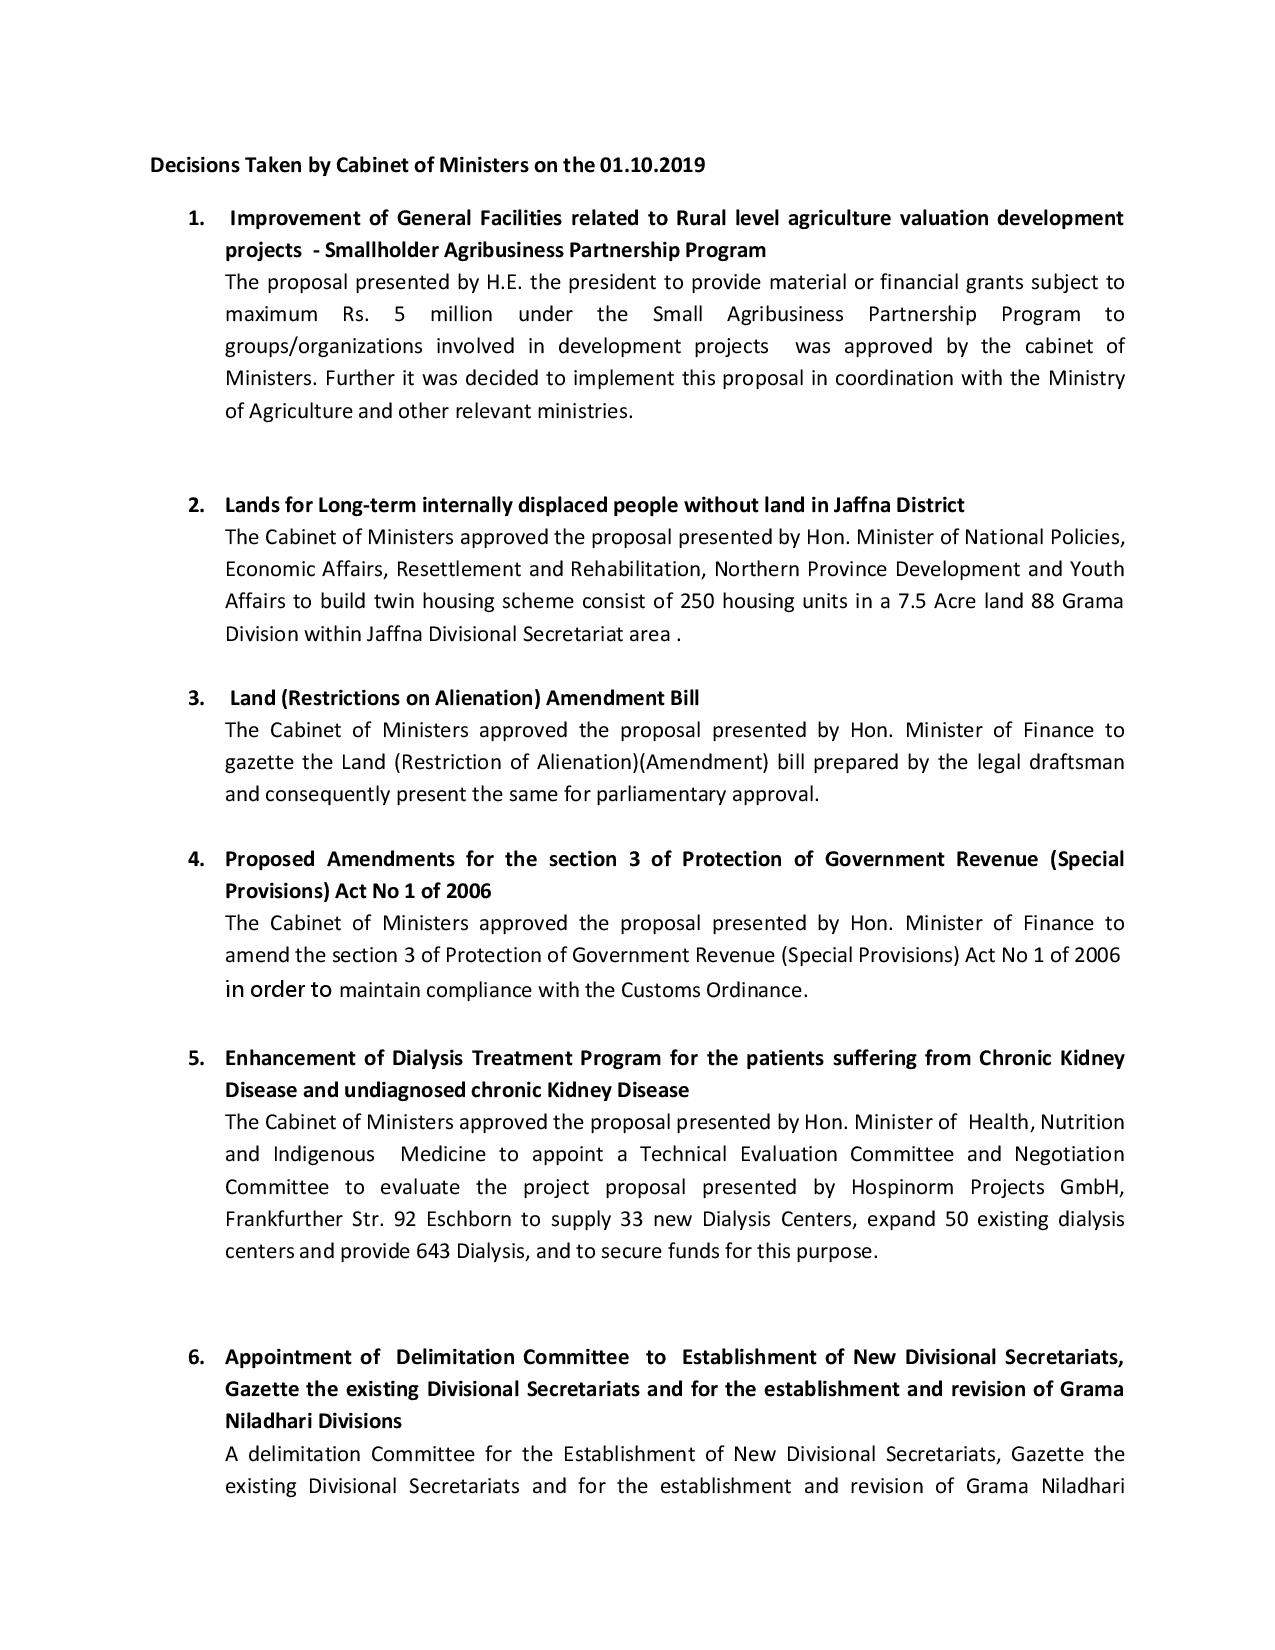 Decisions Taken by Cabinet of Ministers on theE 01.10.2019 page 001